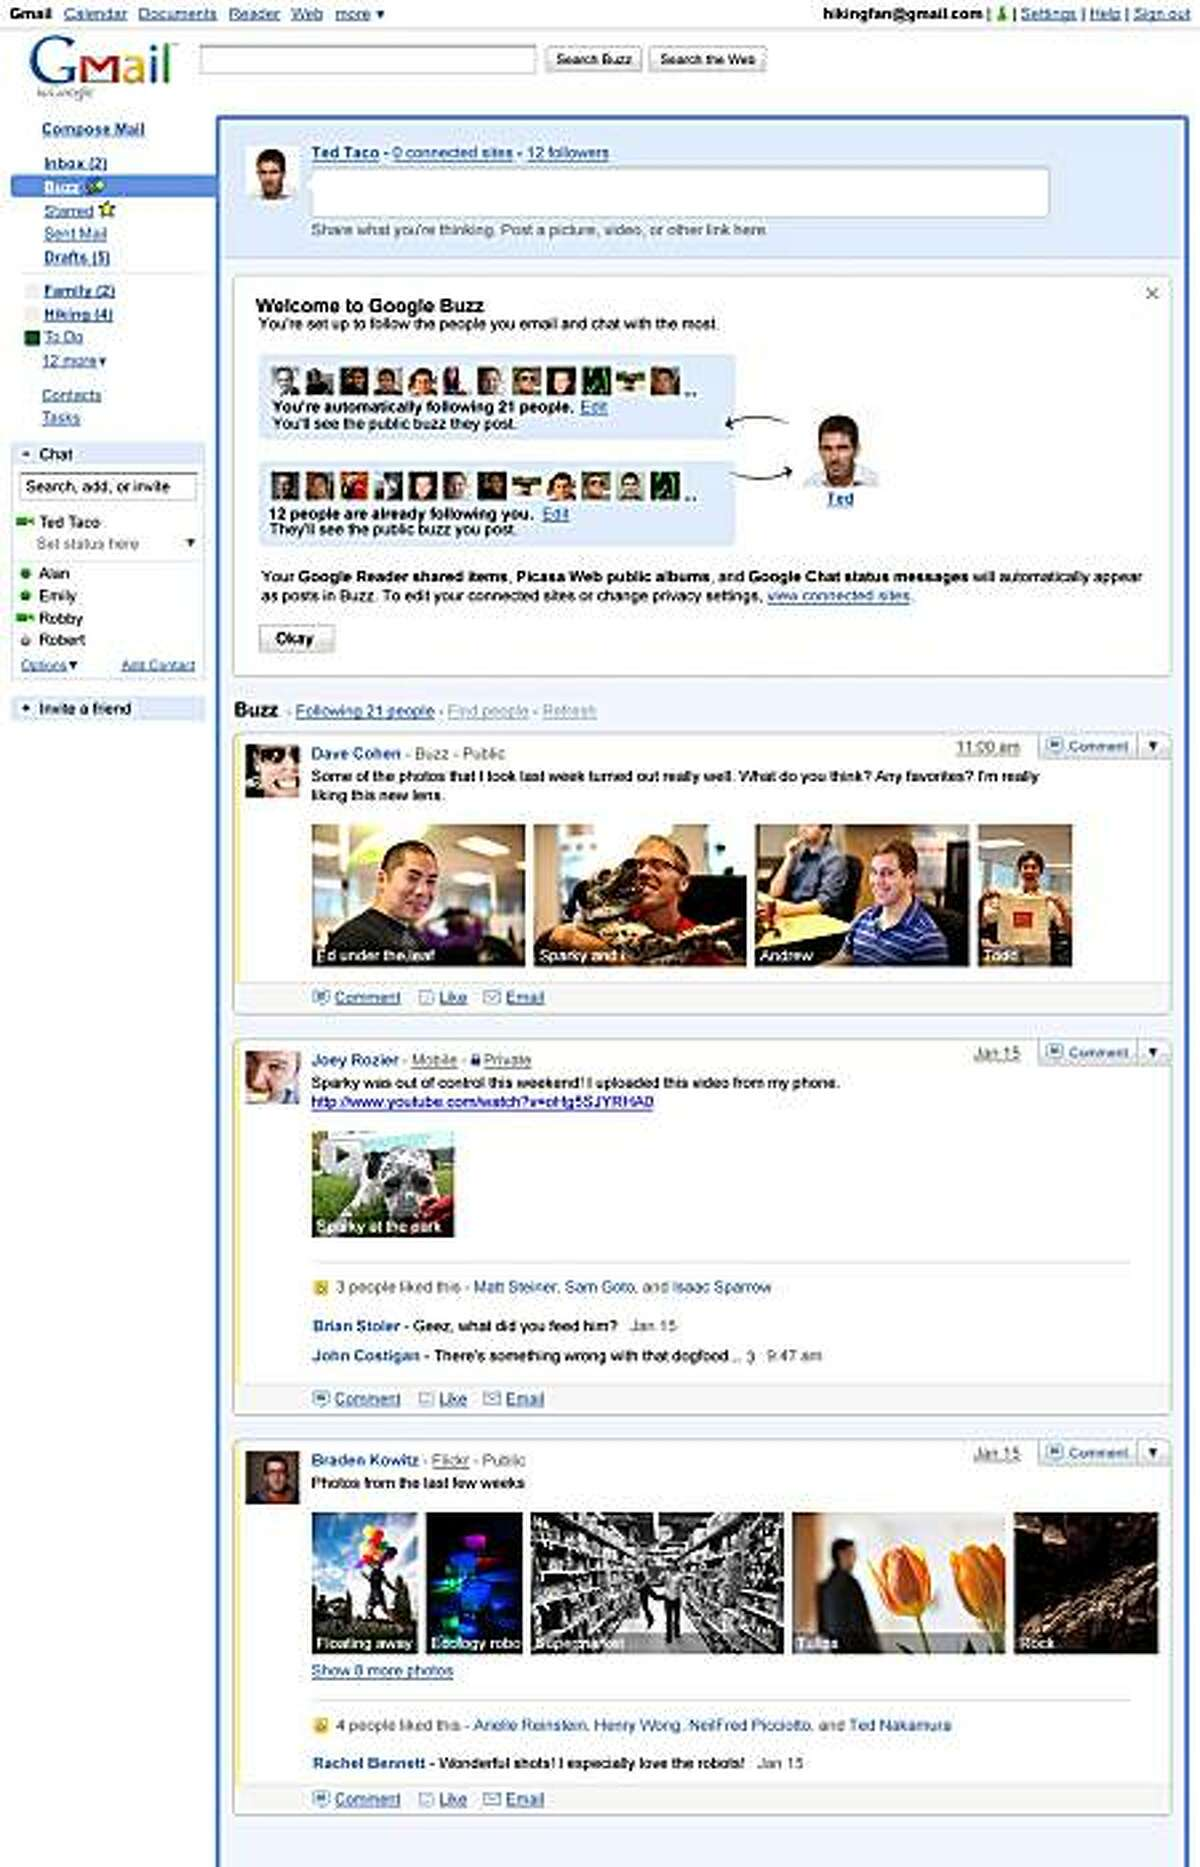 """In this screen shot provided by Google Inc., the company's new """"Google Buzz"""" feature for Gmail is shown. The feature unveiled Tuesday, Feb. 9, 2010, will enable Gmail users to create status updates on Google Buzz and read and comment on the updates postedby their friends. Gmail's Google Buzz feature was assailed by privacy groups because users' followers were preselected based on those they often e-mail or chat with."""